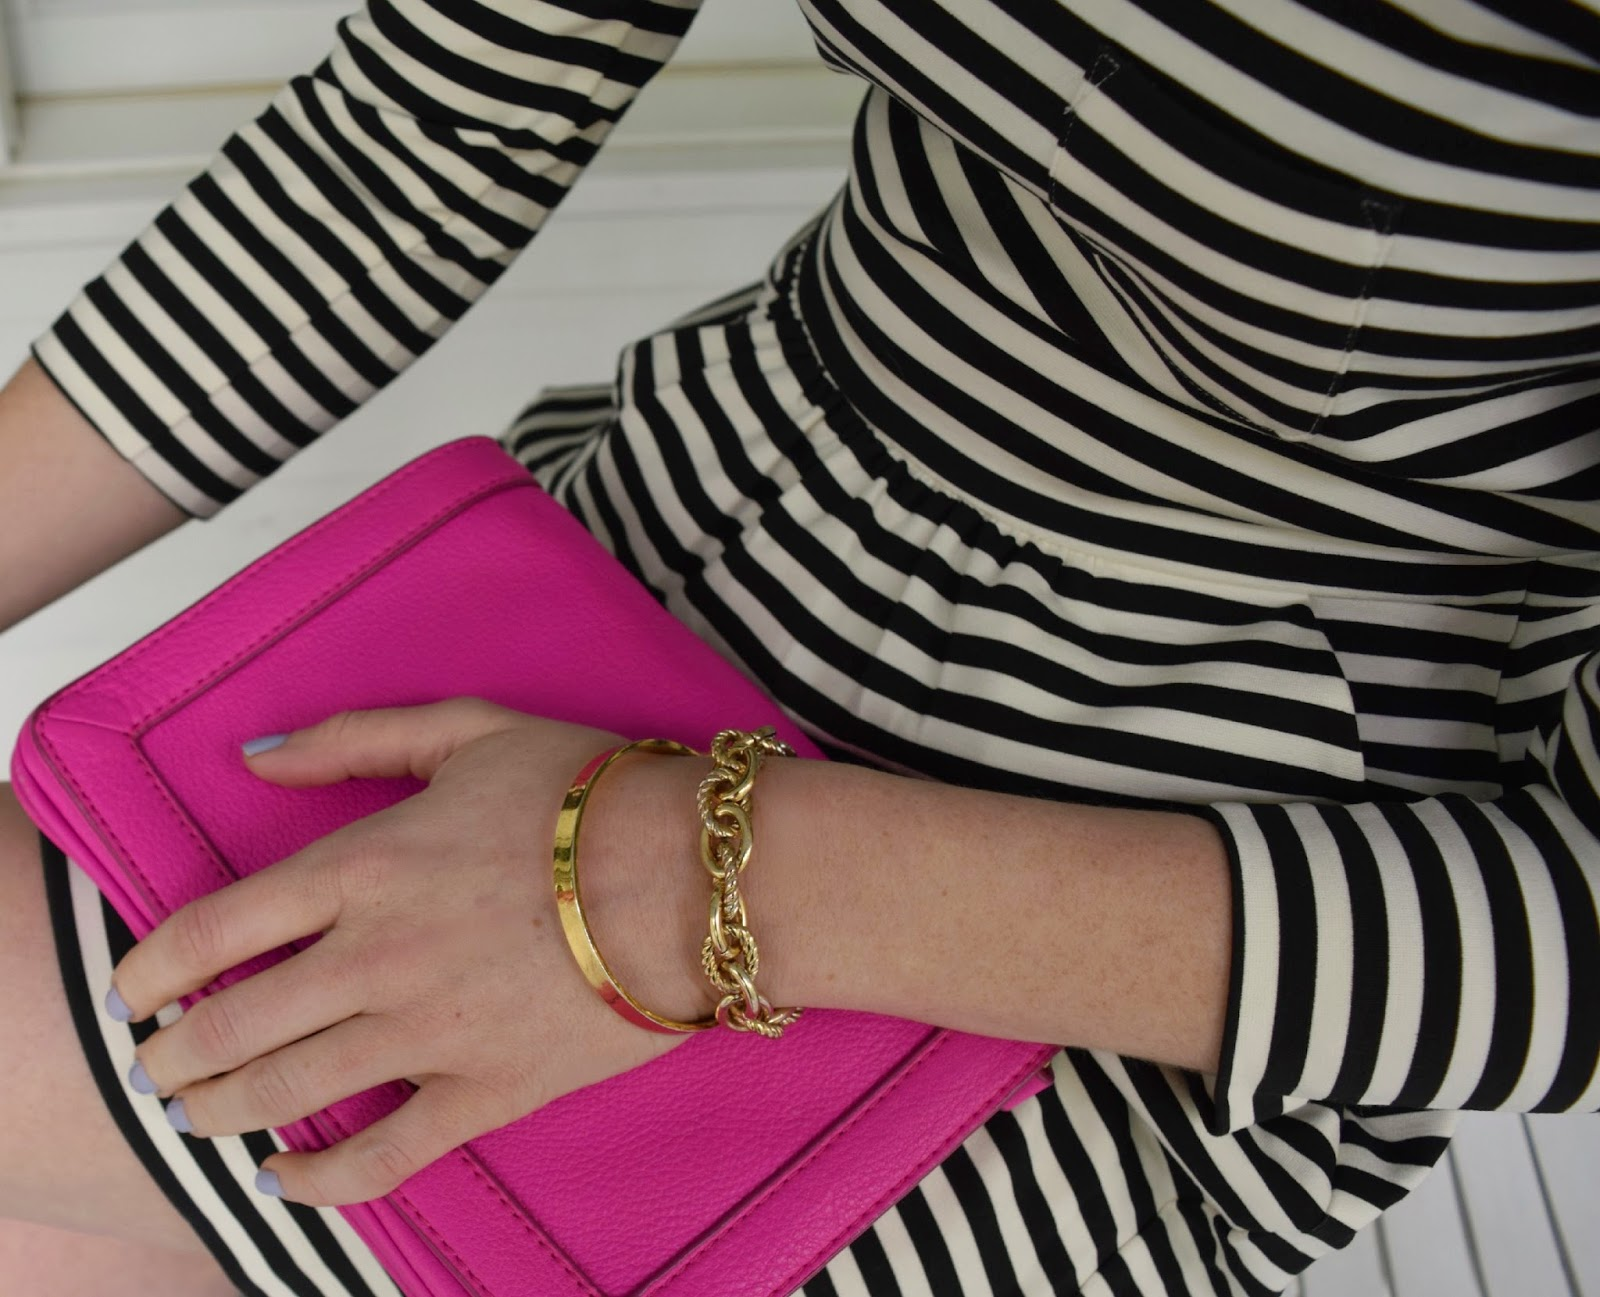 factory pocket dress in stripe - j.crew striped dress - black and white striped dress - pink purse - kate spade bracelet